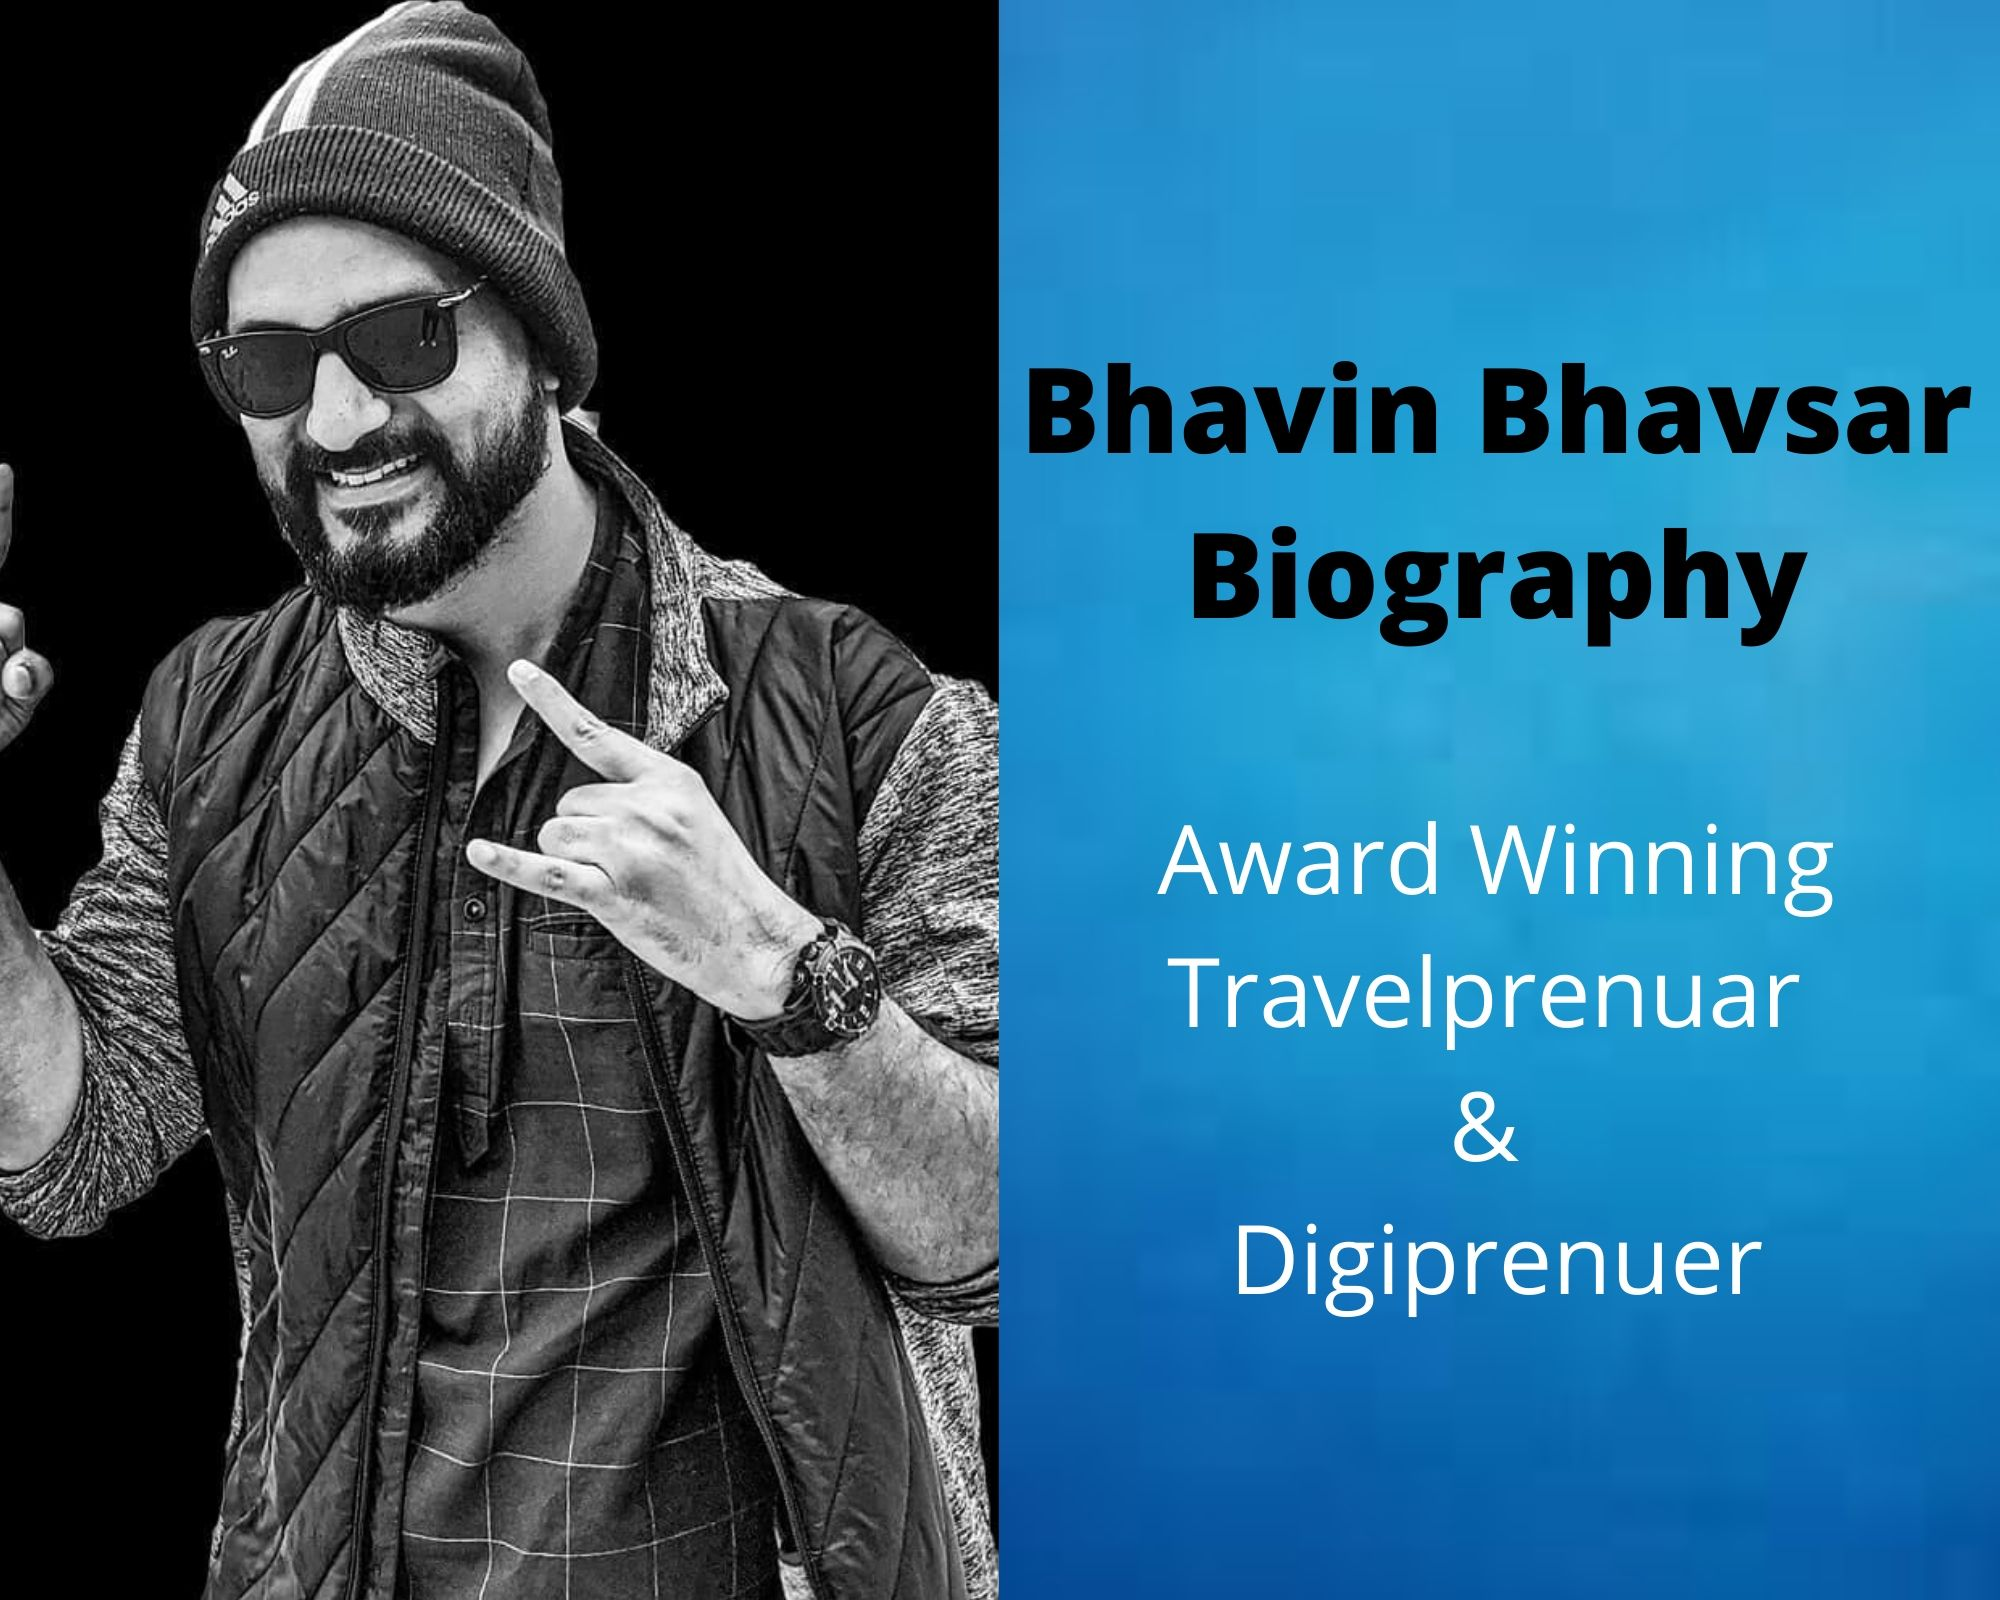 Bhavin Bhavsar Biography | Award Winning Travelprenuar | Digiprenuer